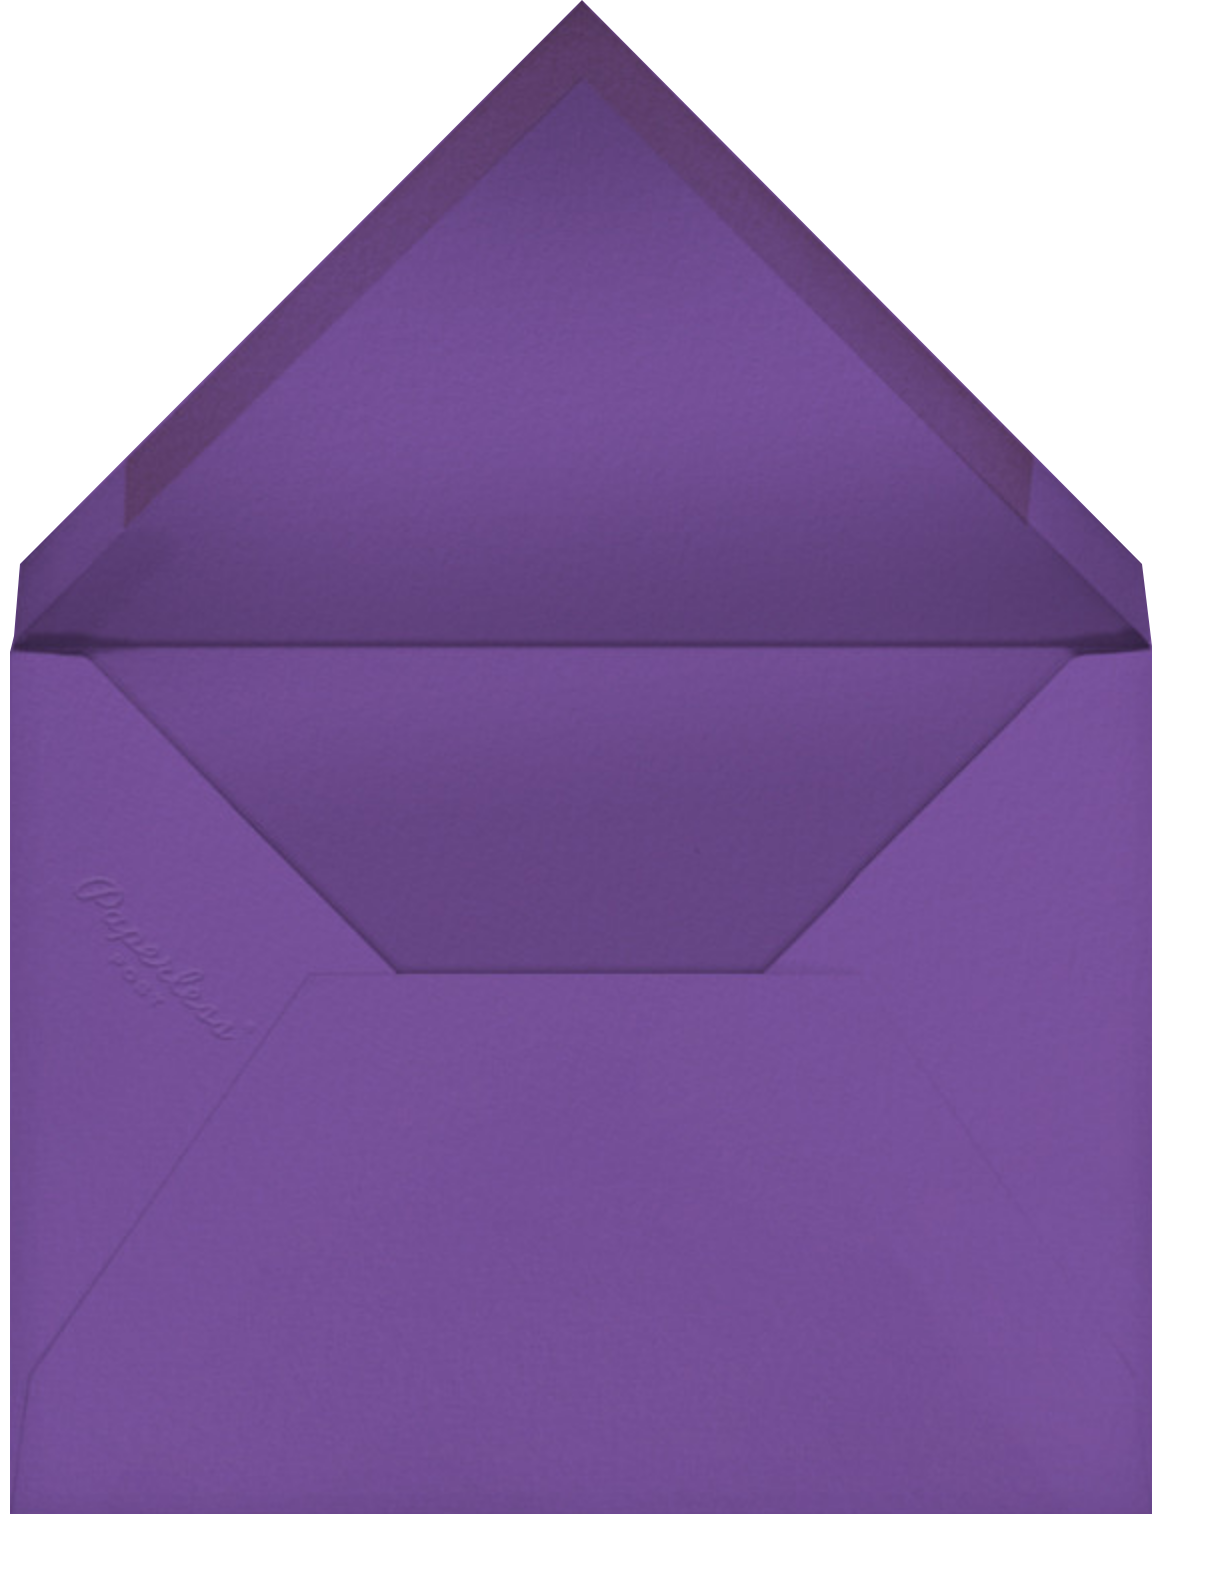 Cadogan Purple Square - Paperless Post - Adult birthday - envelope back